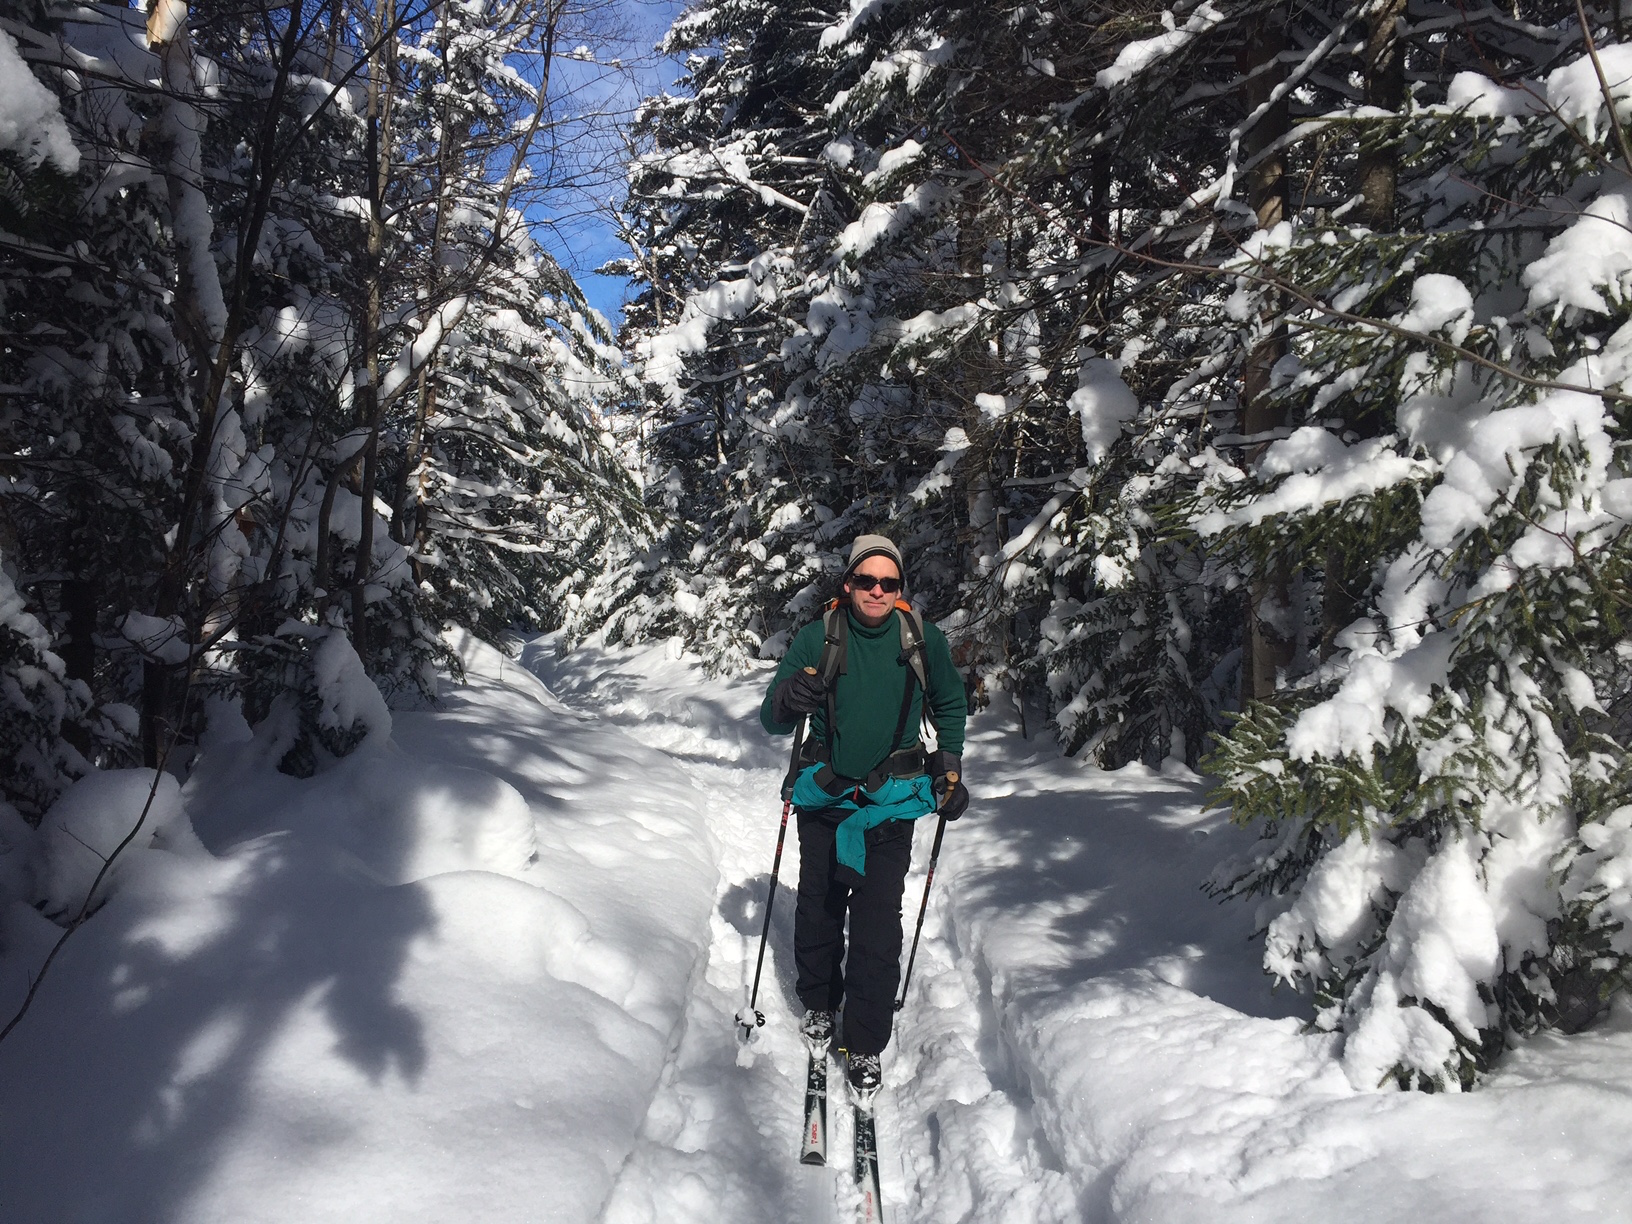 Cross country skier on wooded trail with heavy snow